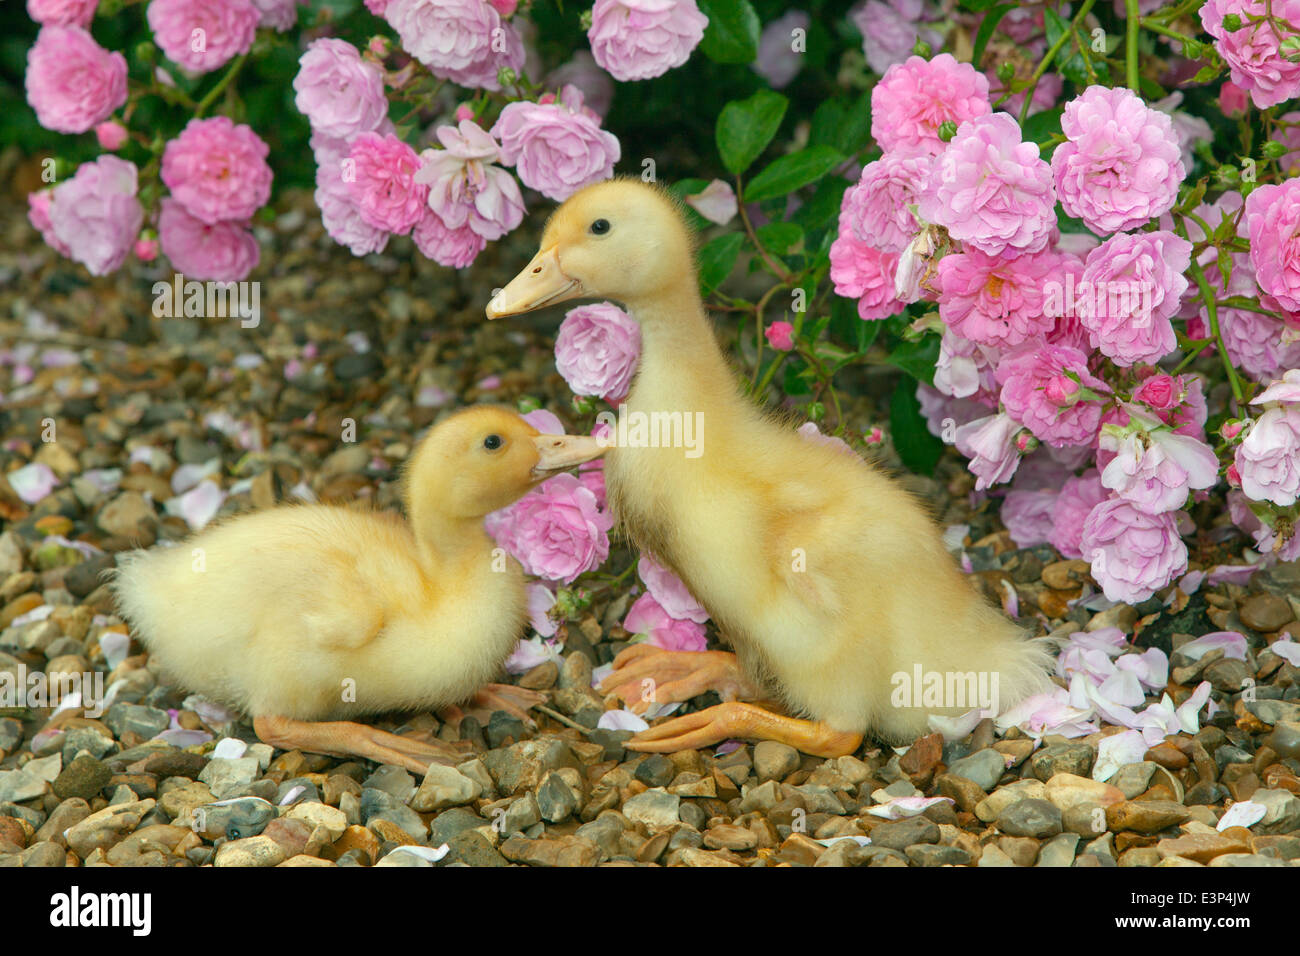 A brood of Ducklings at a week old - Stock Image